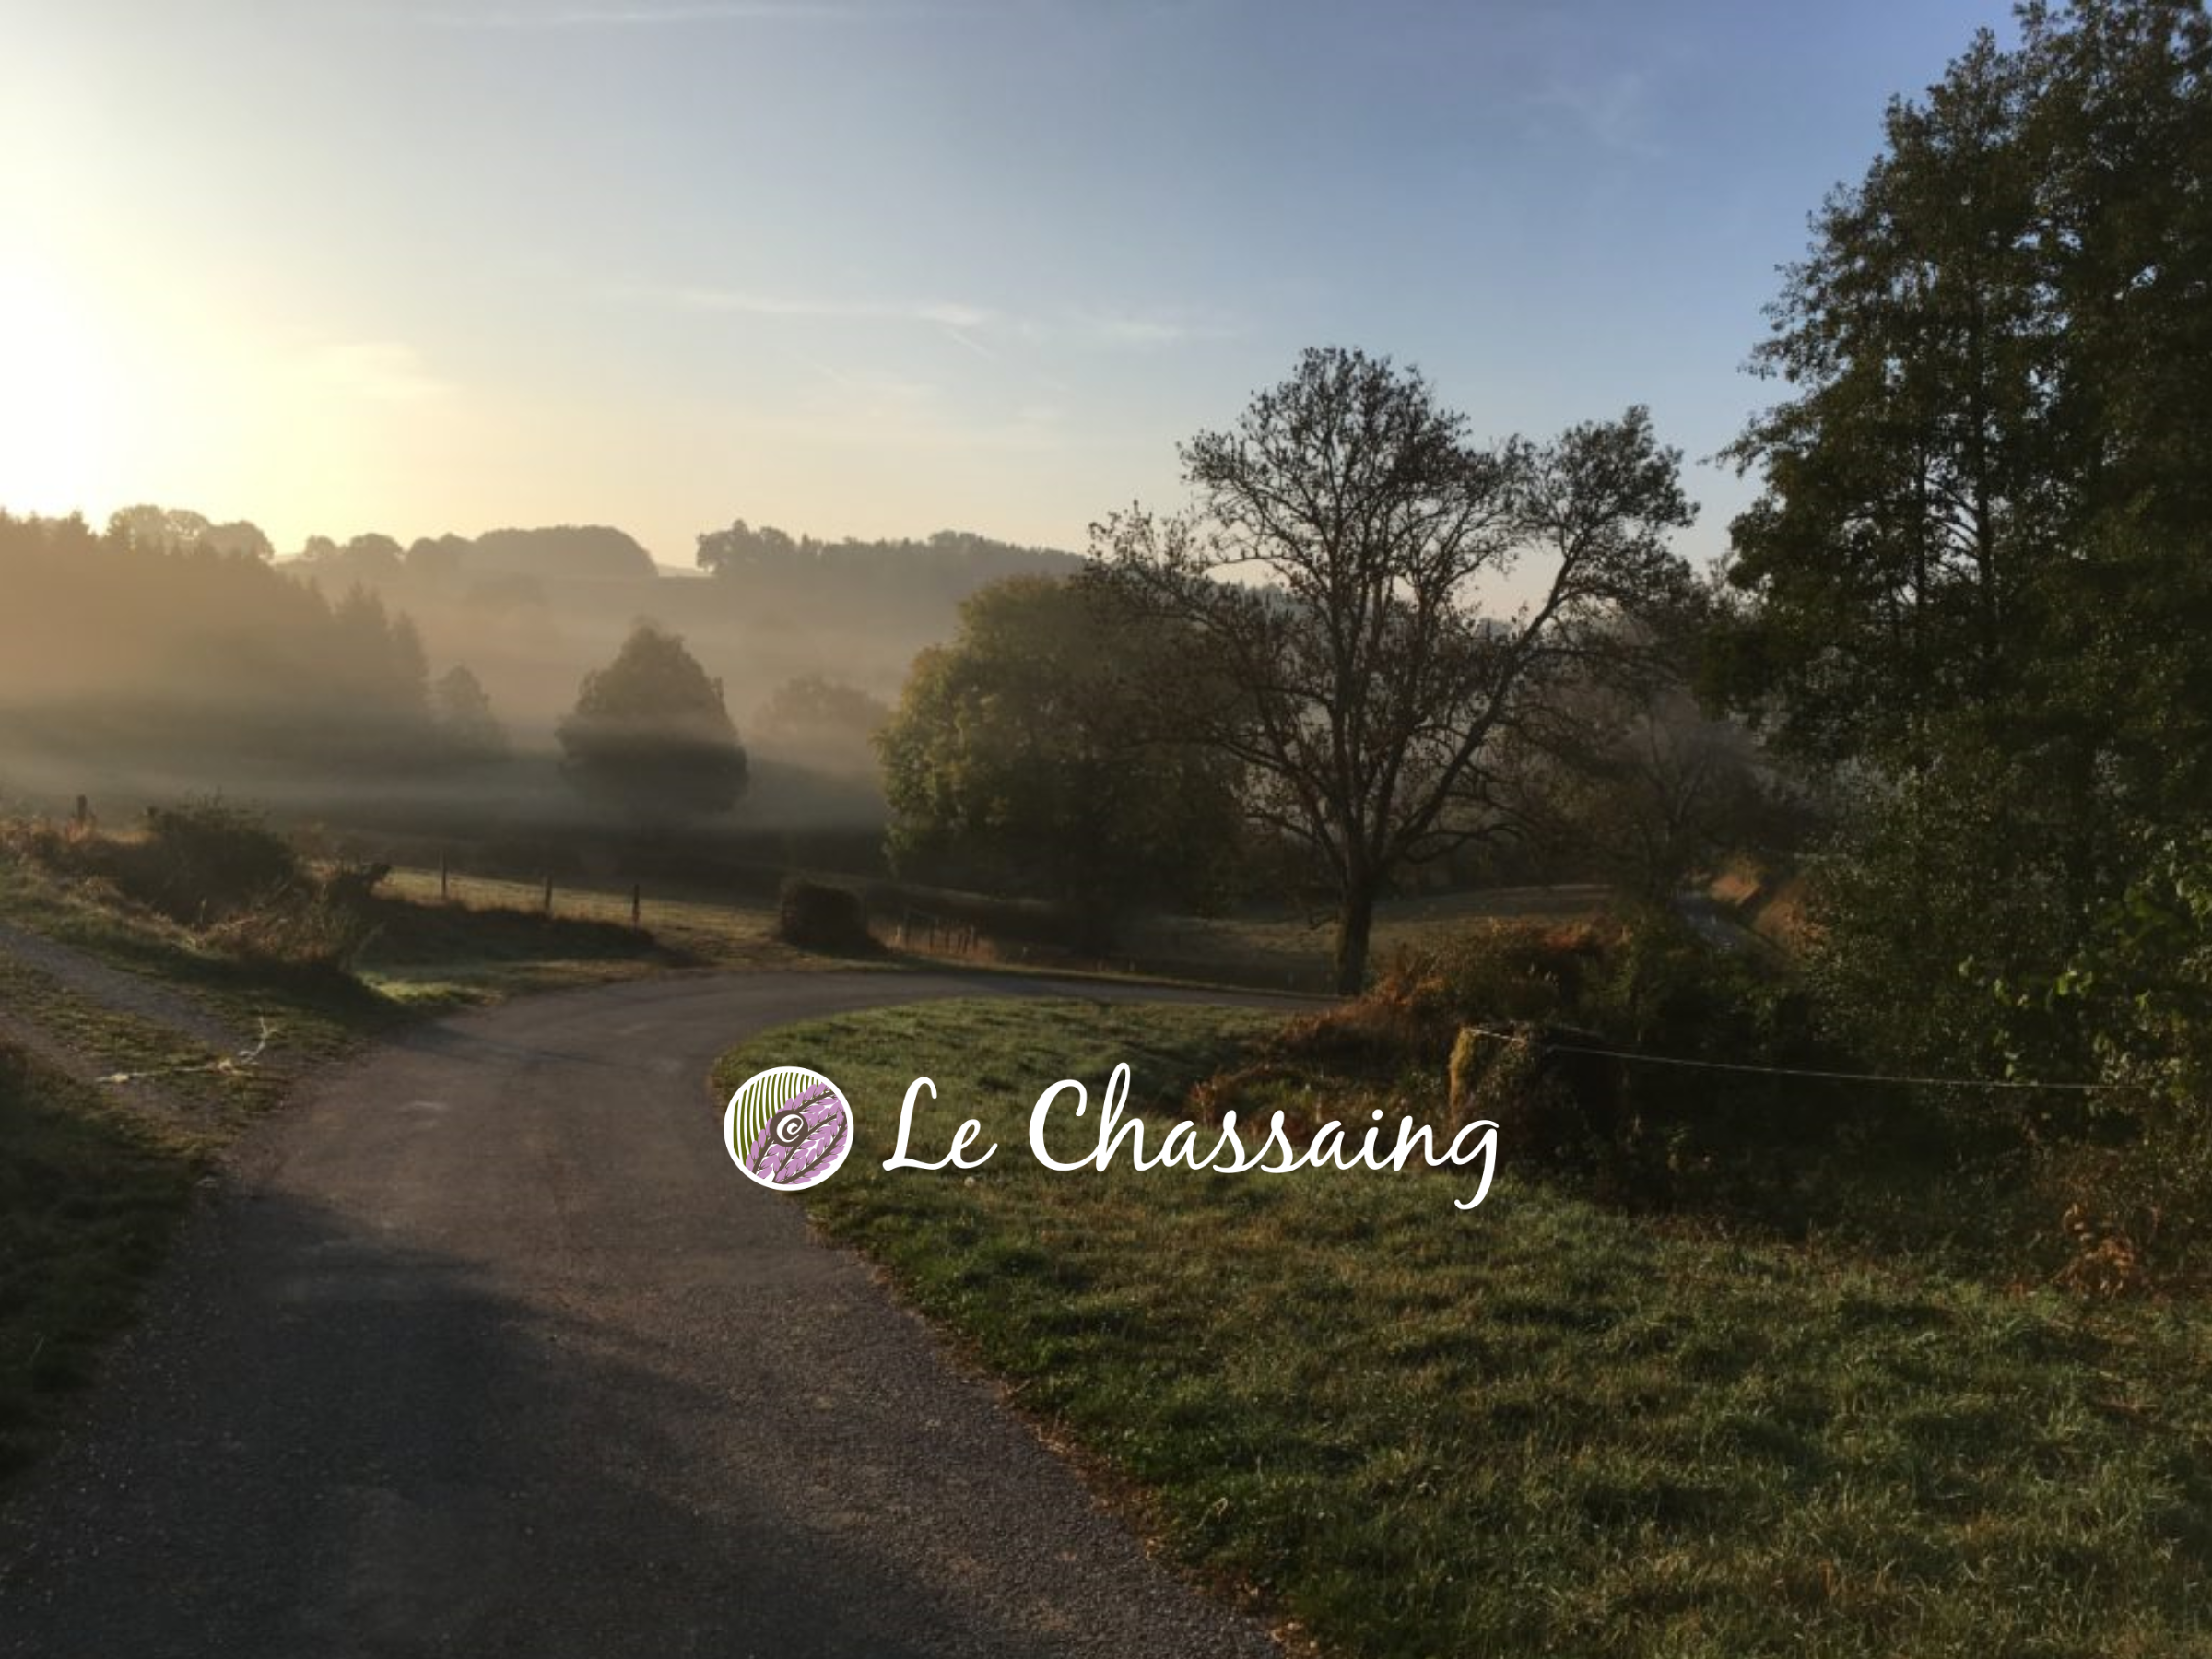 Notes From Le Chassaing